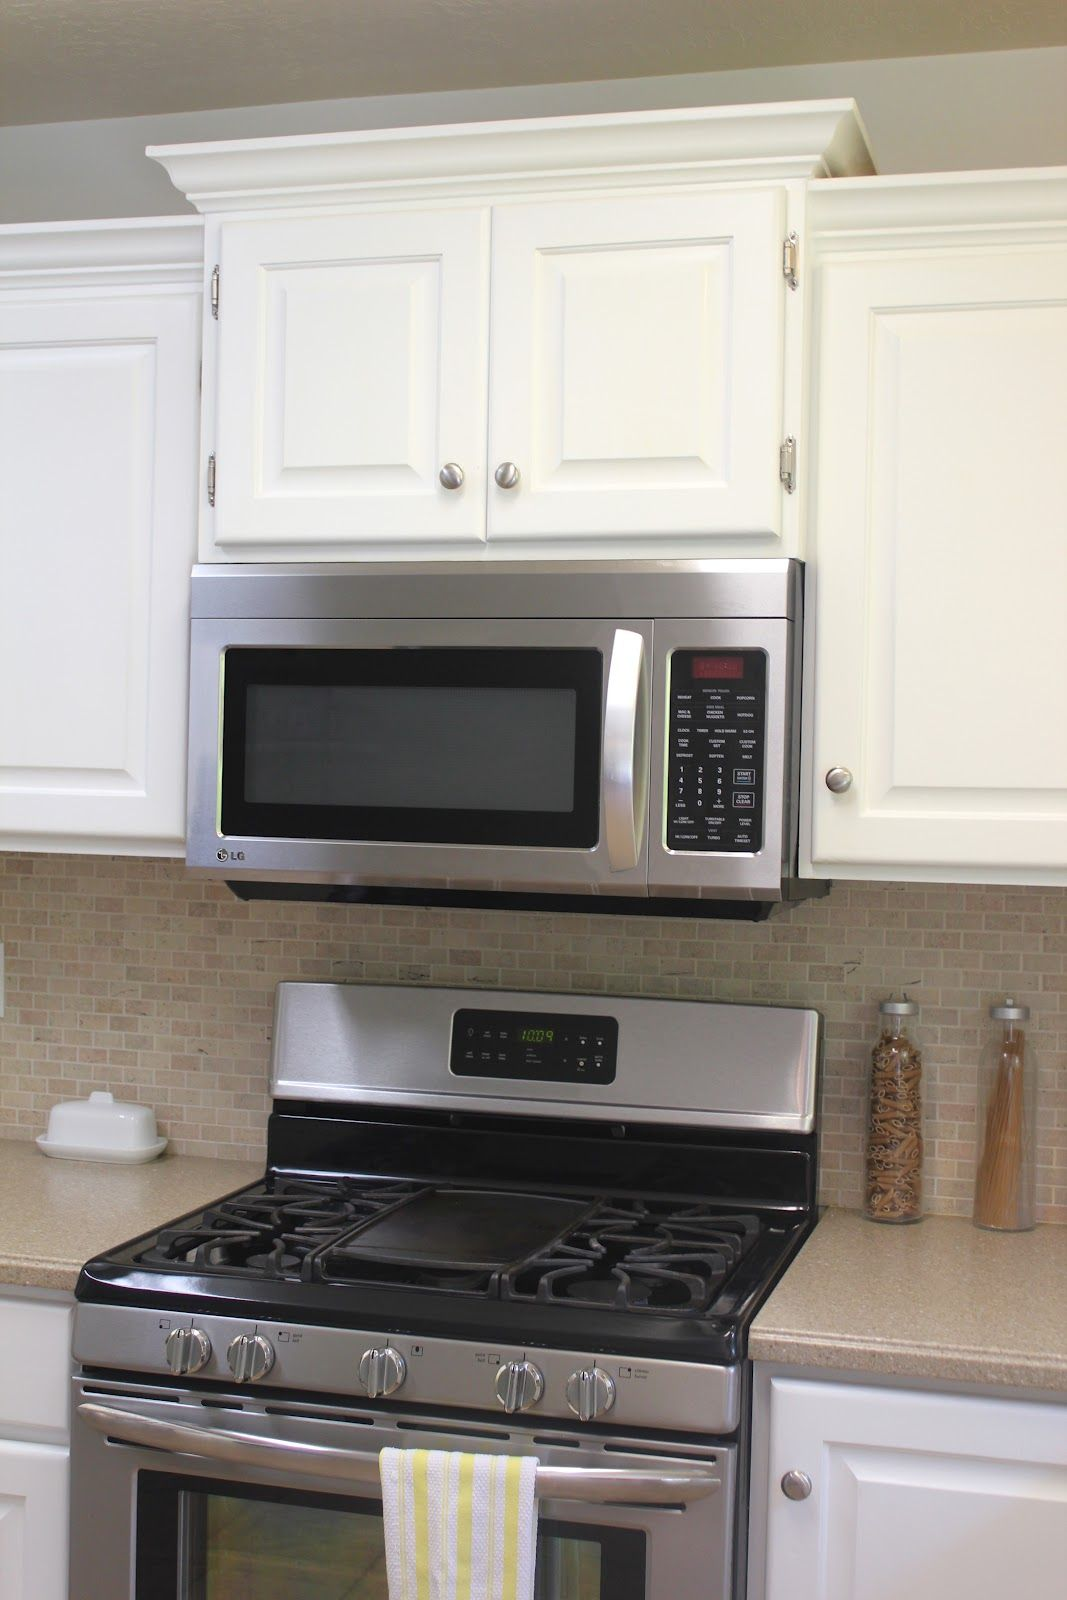 Wonderful Kitchen Remodel: Big Results on a Not So Big Budget - staggered  PB31